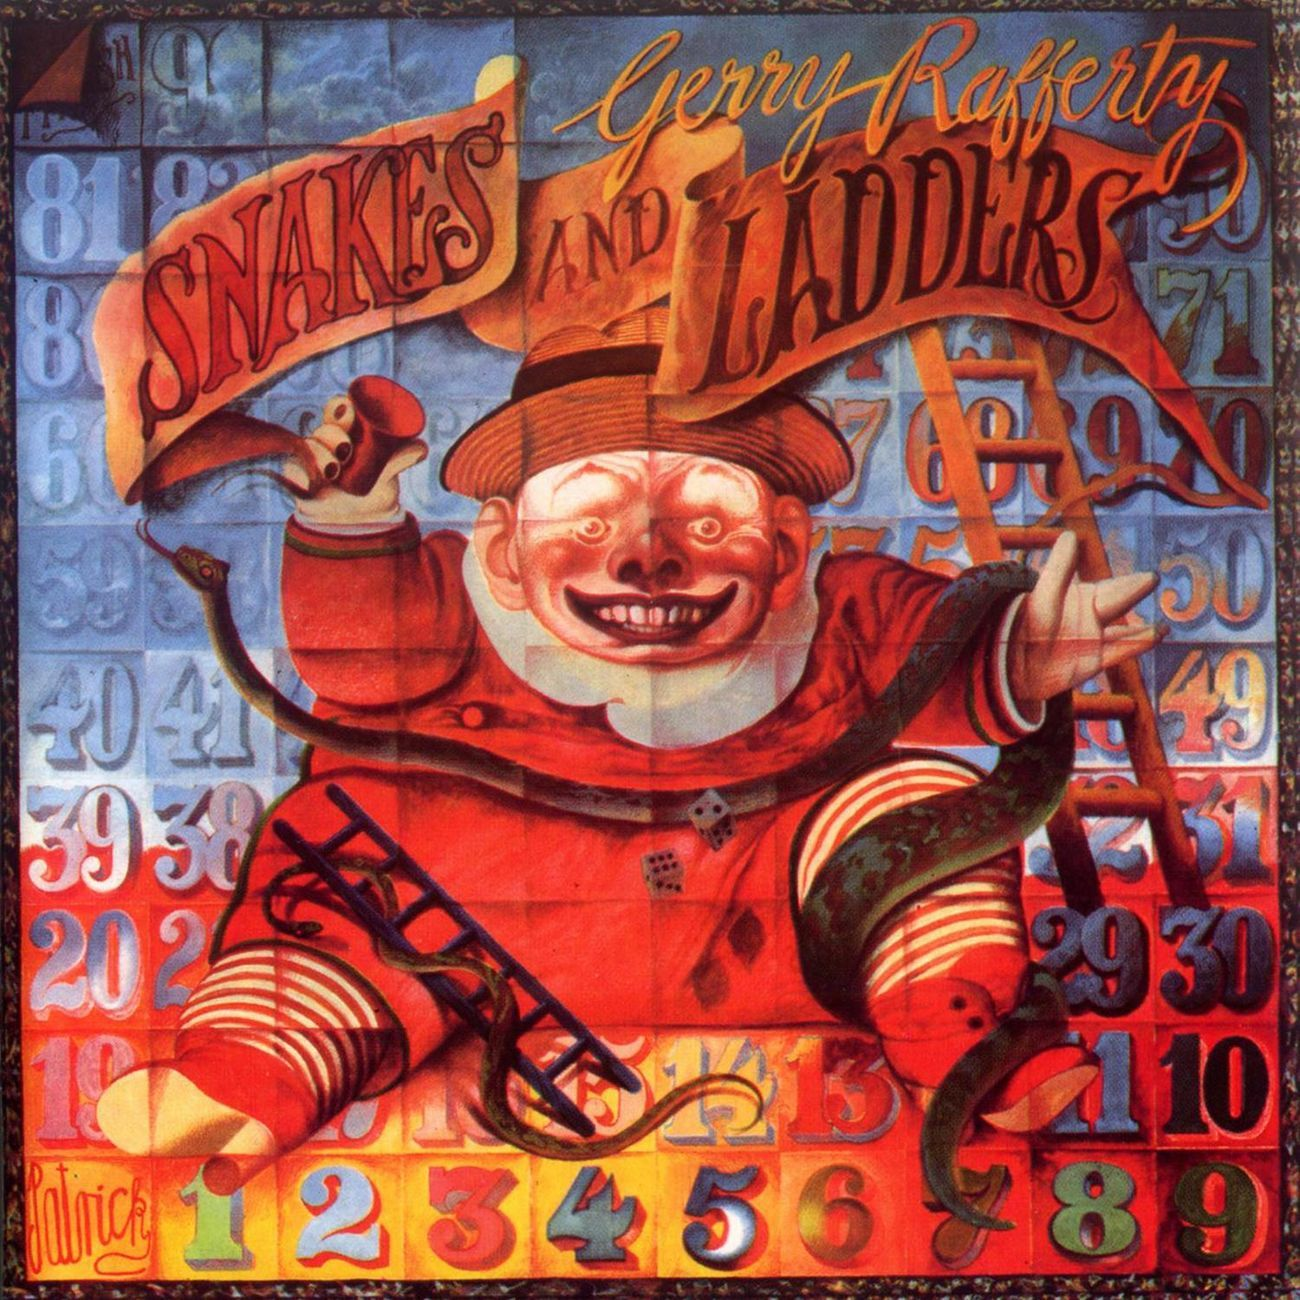 John Byrne 1980 Gerry Rafferty Snakes And Ladders